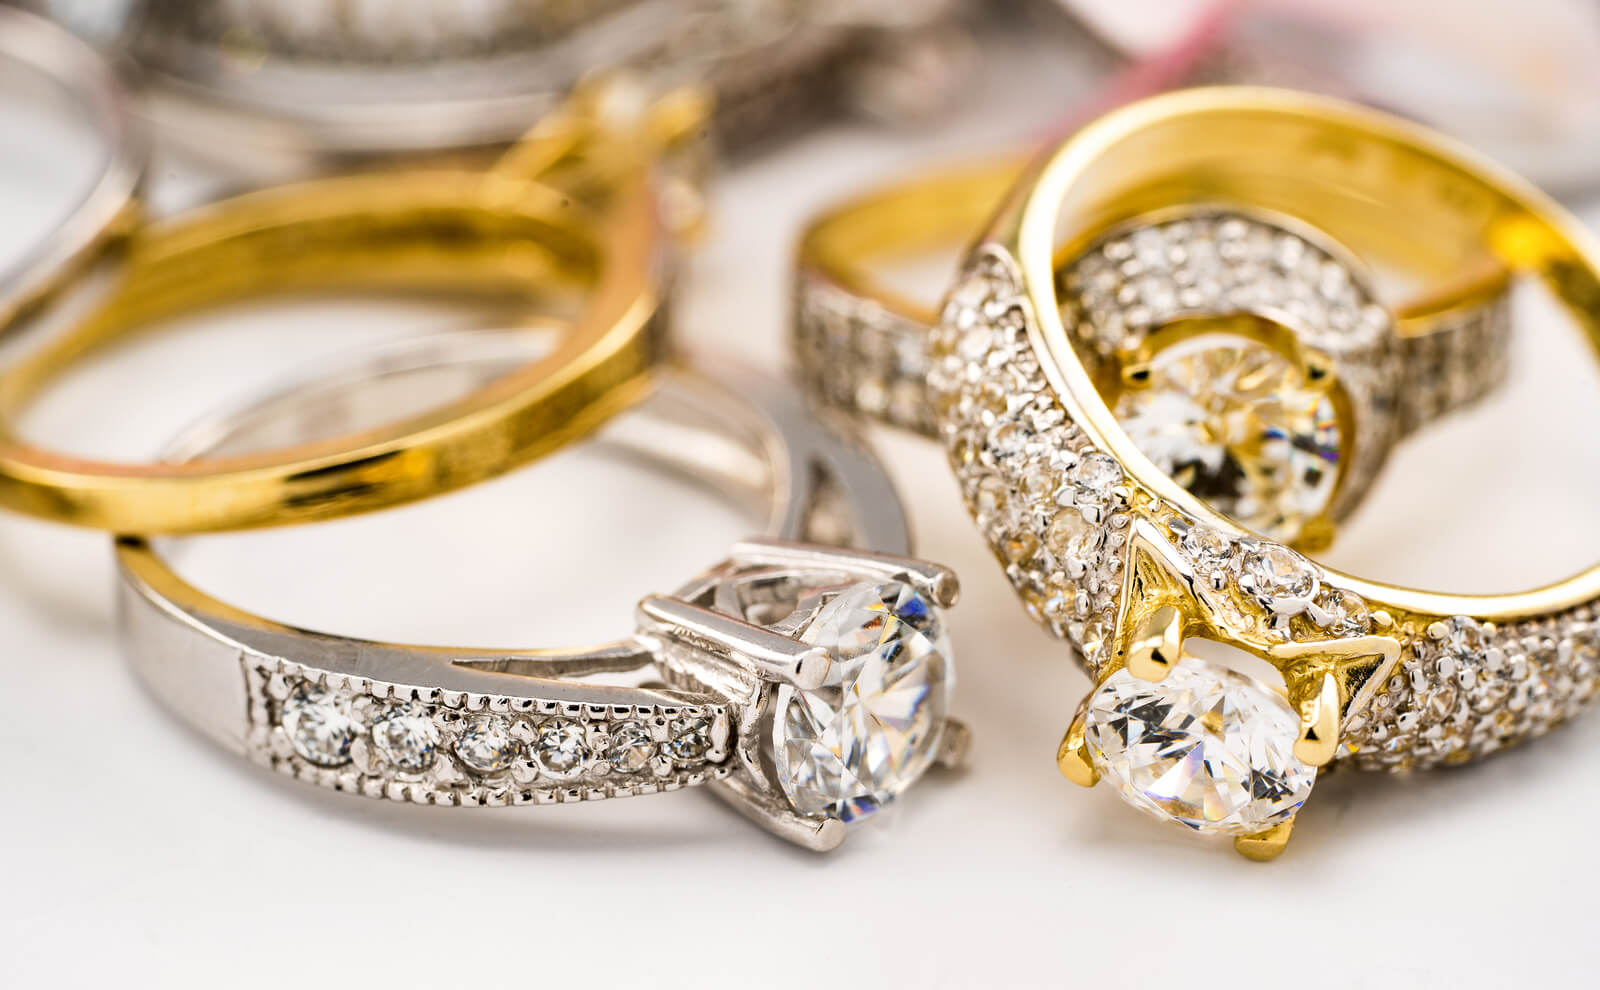 Unique Rafka Engagement Rings: Only the Best for the Best